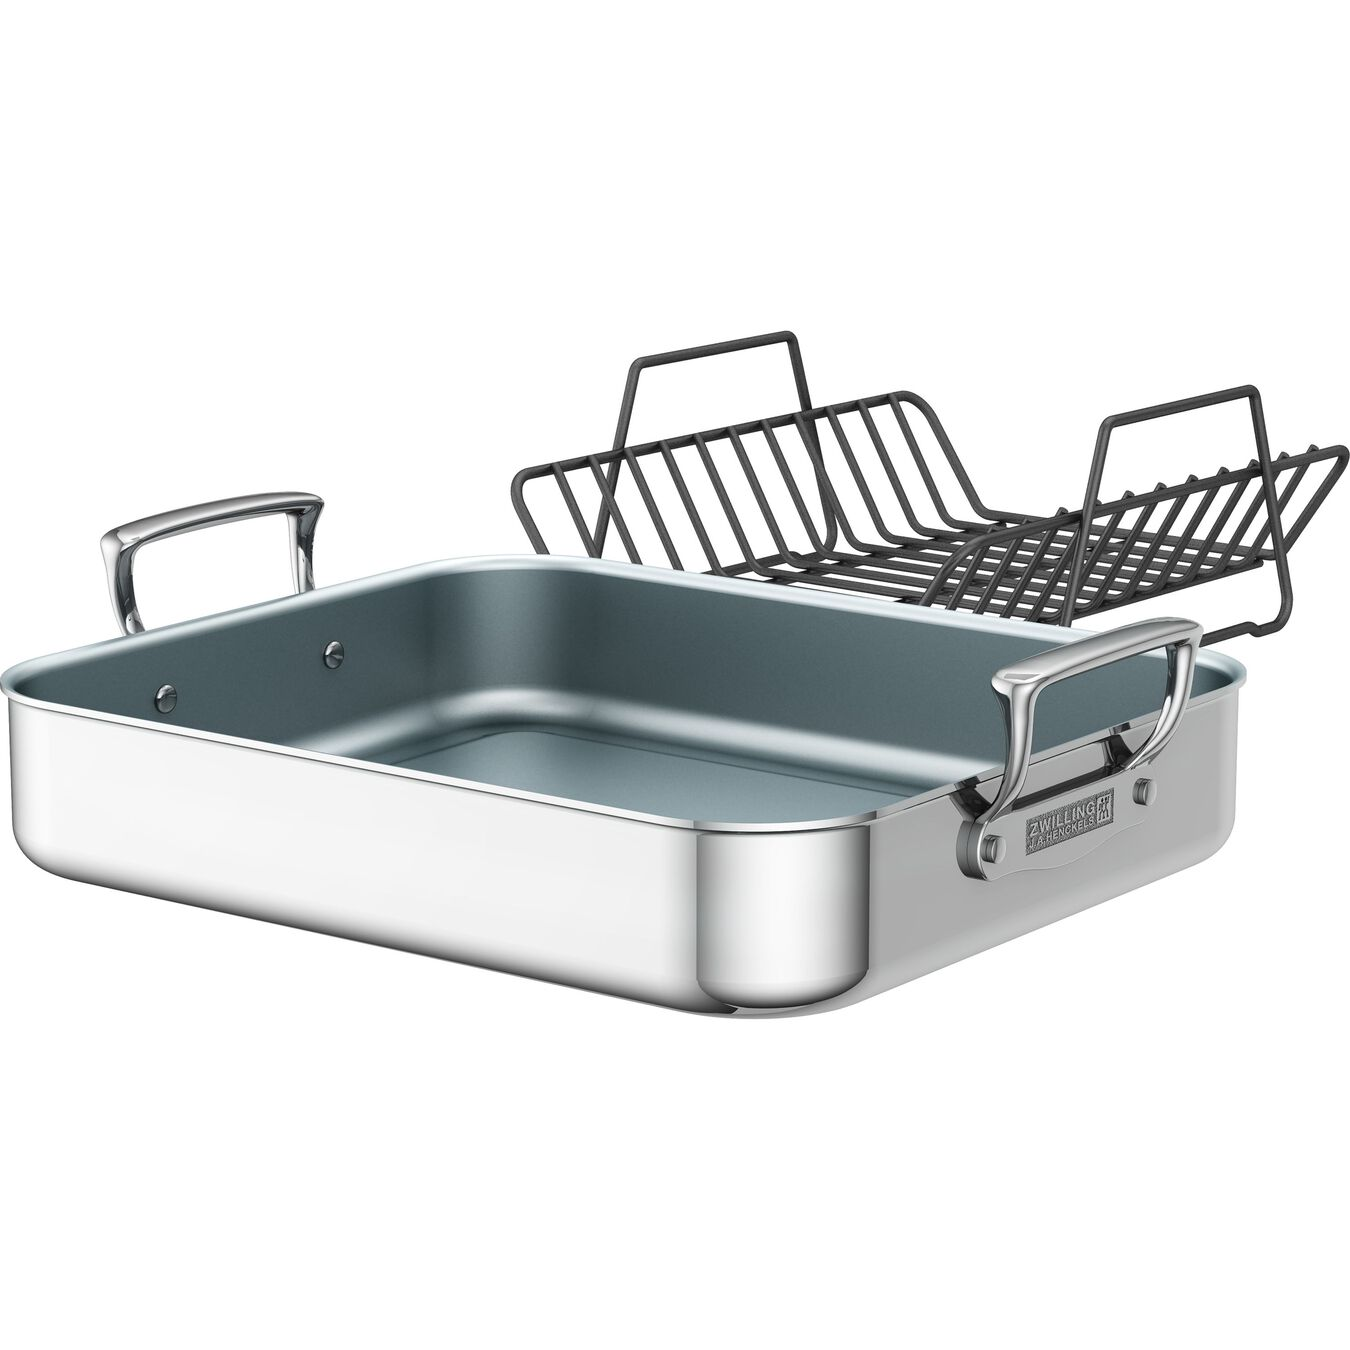 Polished Stainless Steel Ceramic Nonstick Roasting Pan,,large 1